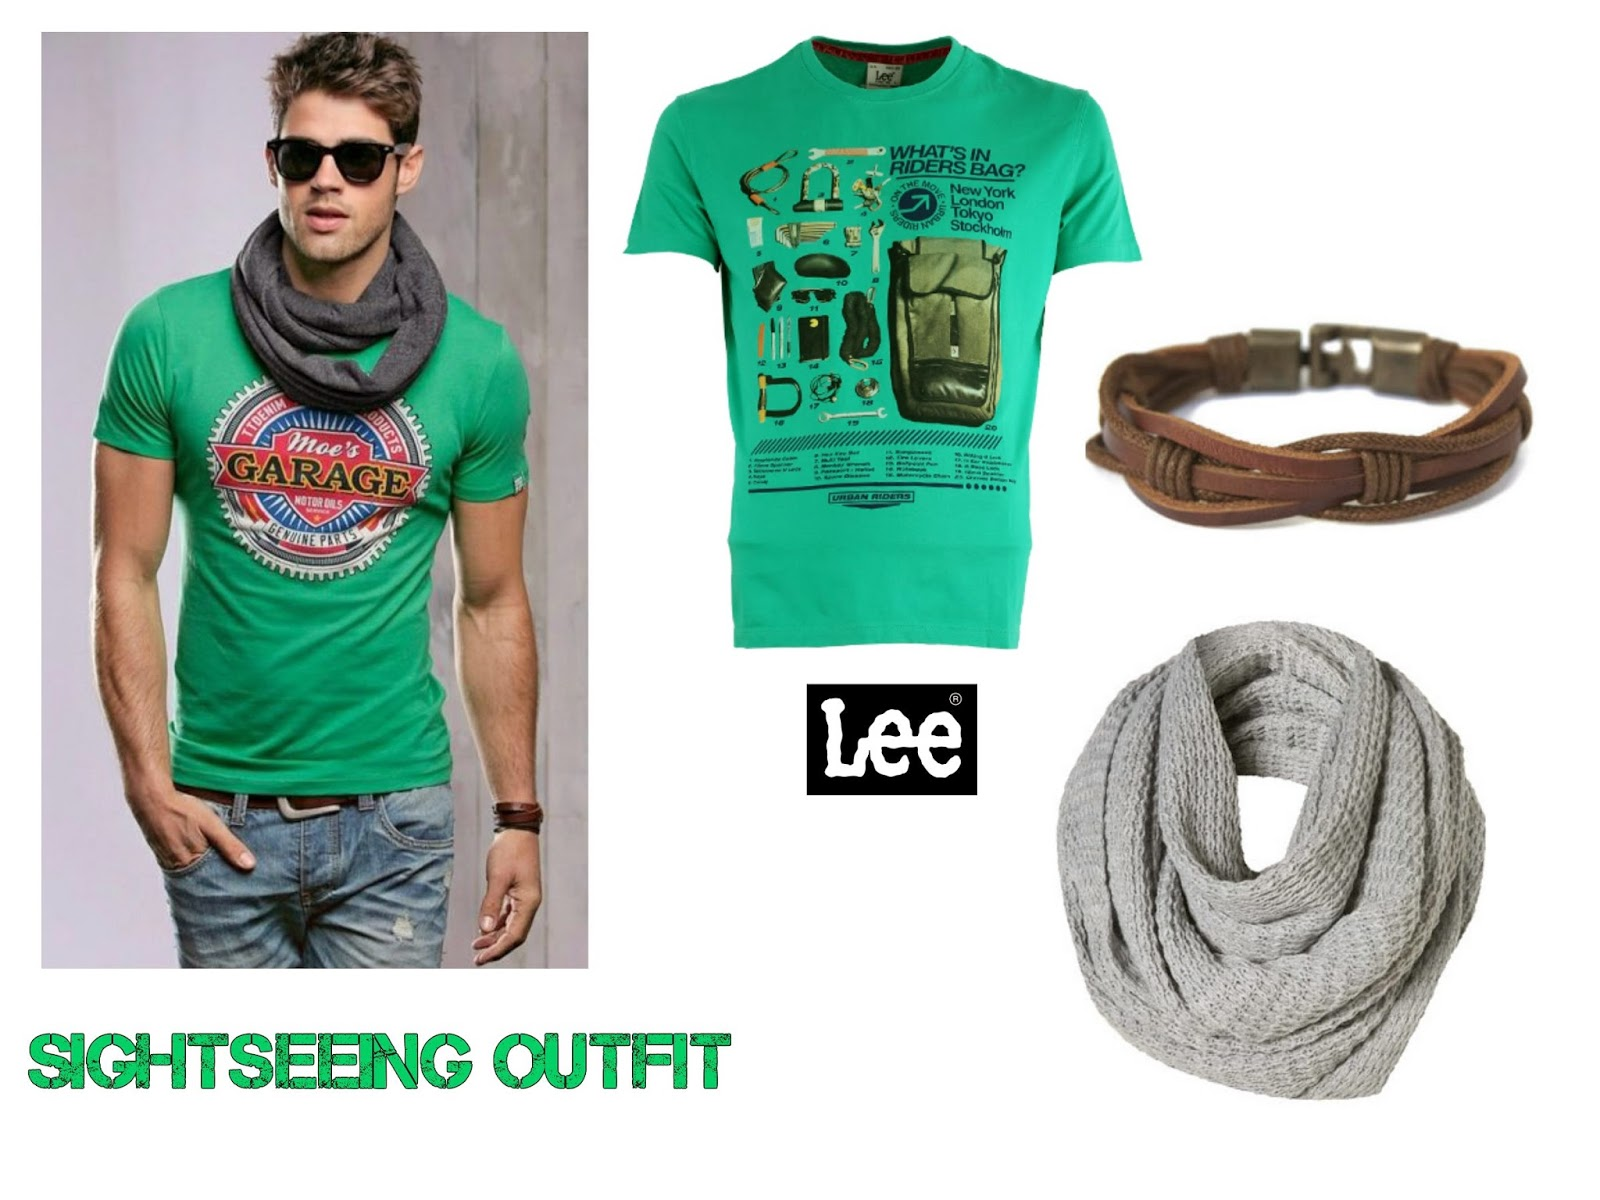 Lee green t-shirt, peppy green t-shirt, travel outfit